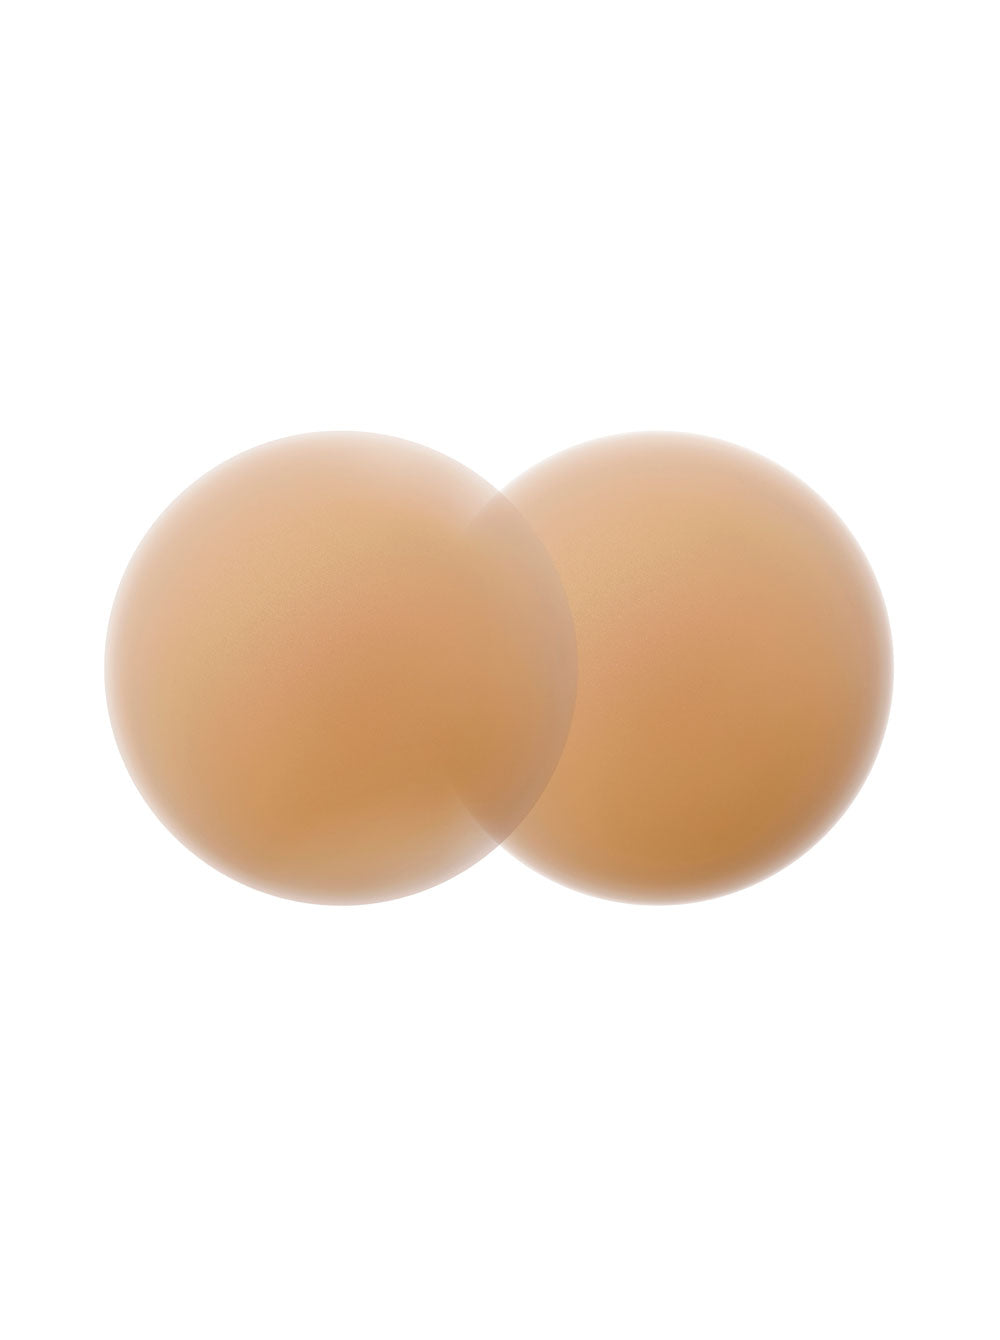 Bristols 6 Nippies Skin adhesive covers in Medium Caramel